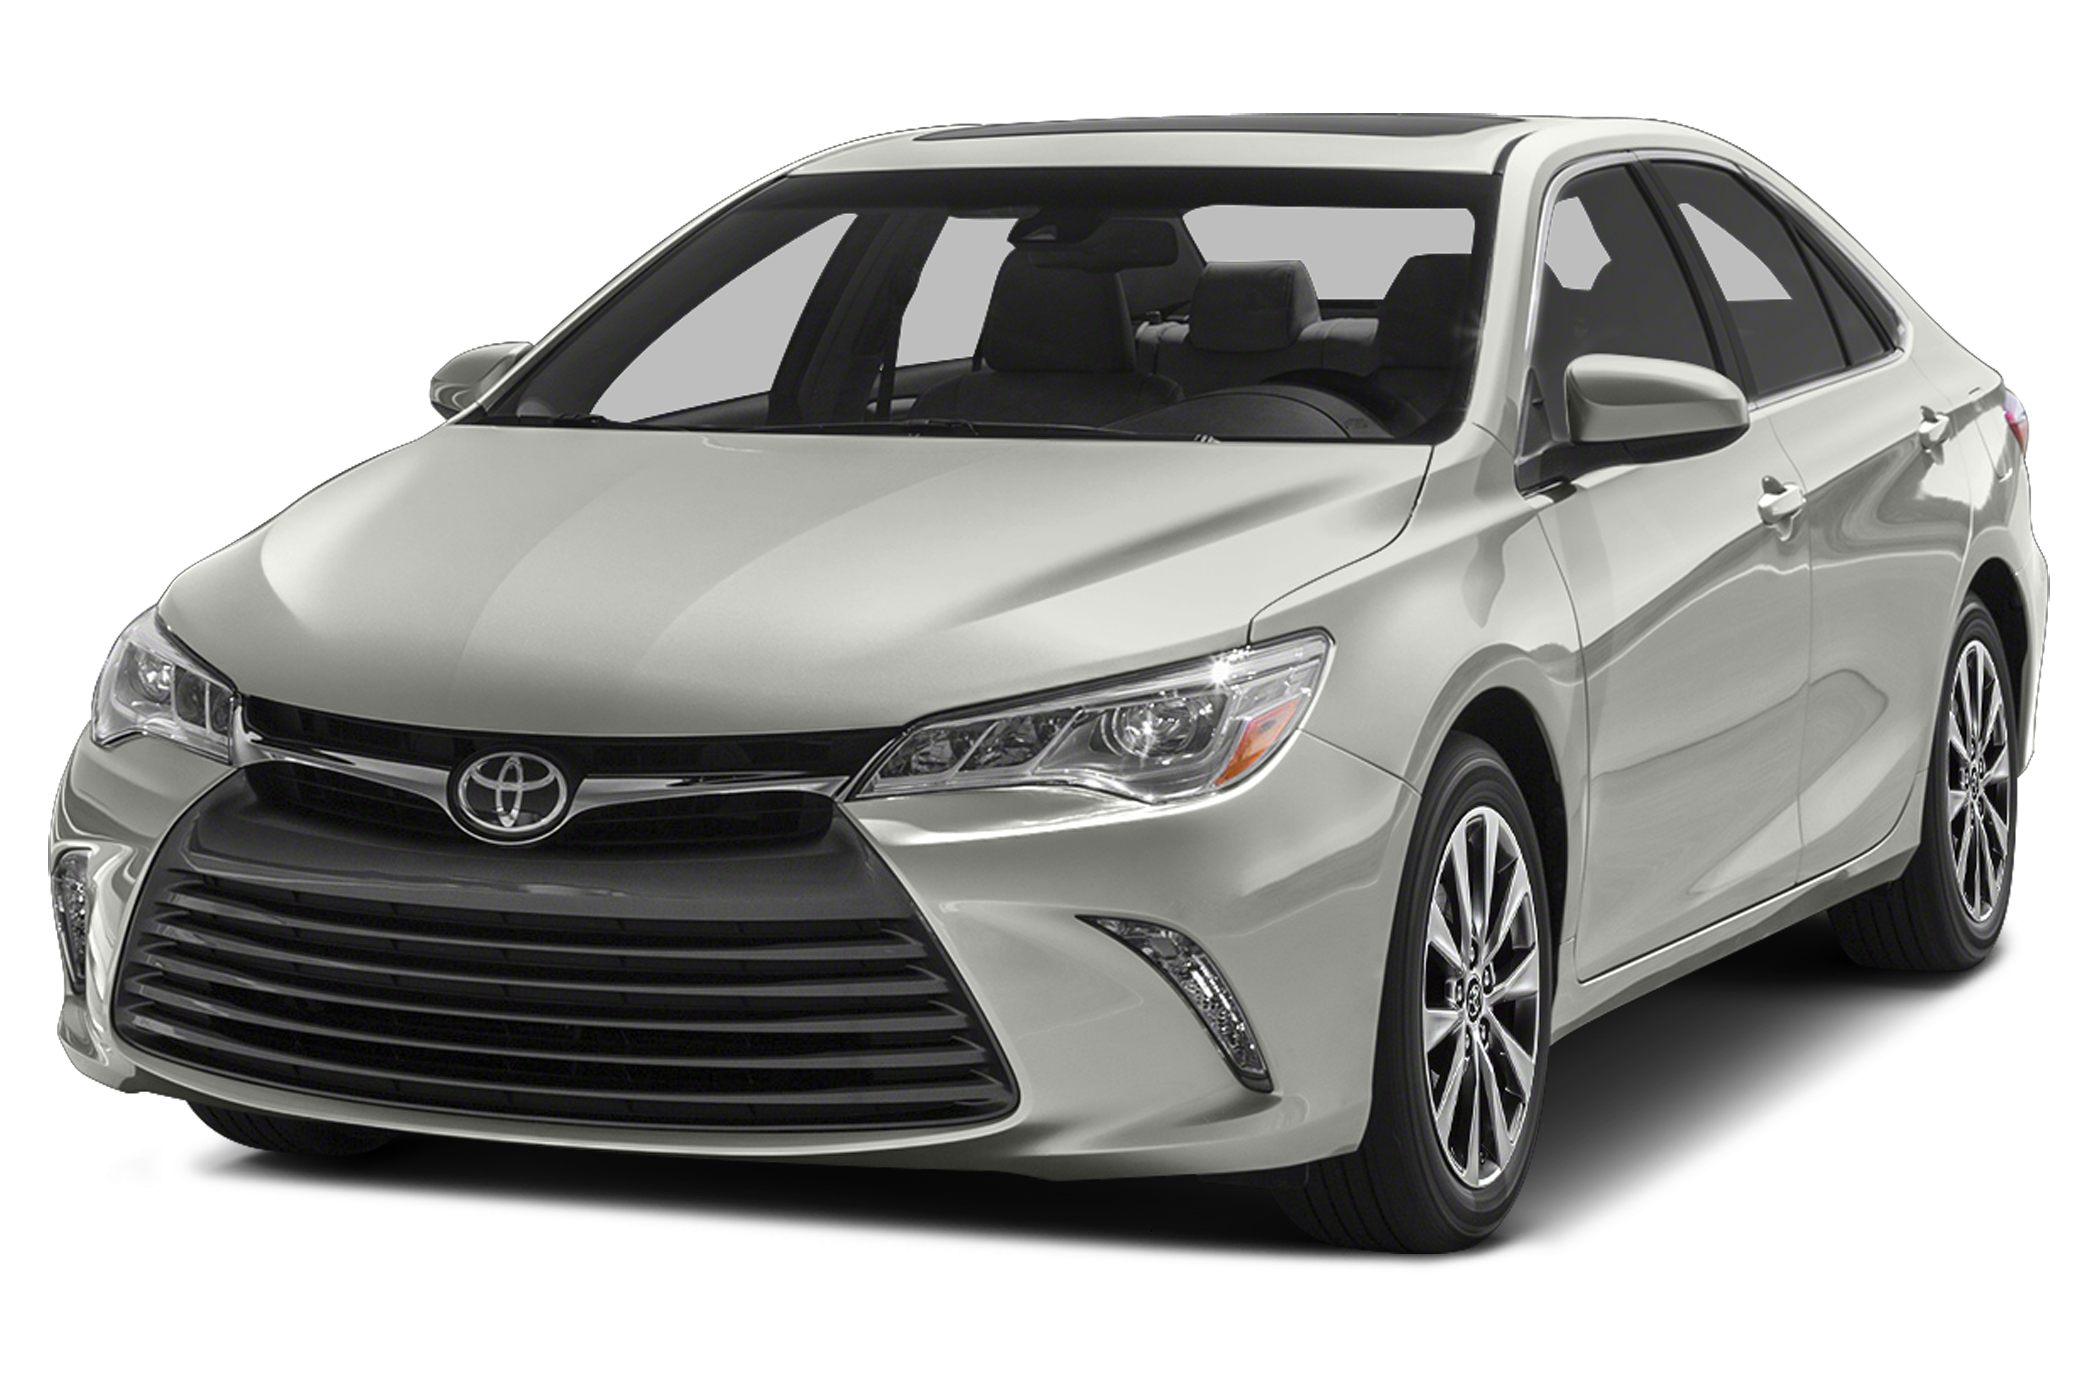 2015 Toyota Camry LE Sedan for sale in New York for $23,600 with 0 miles